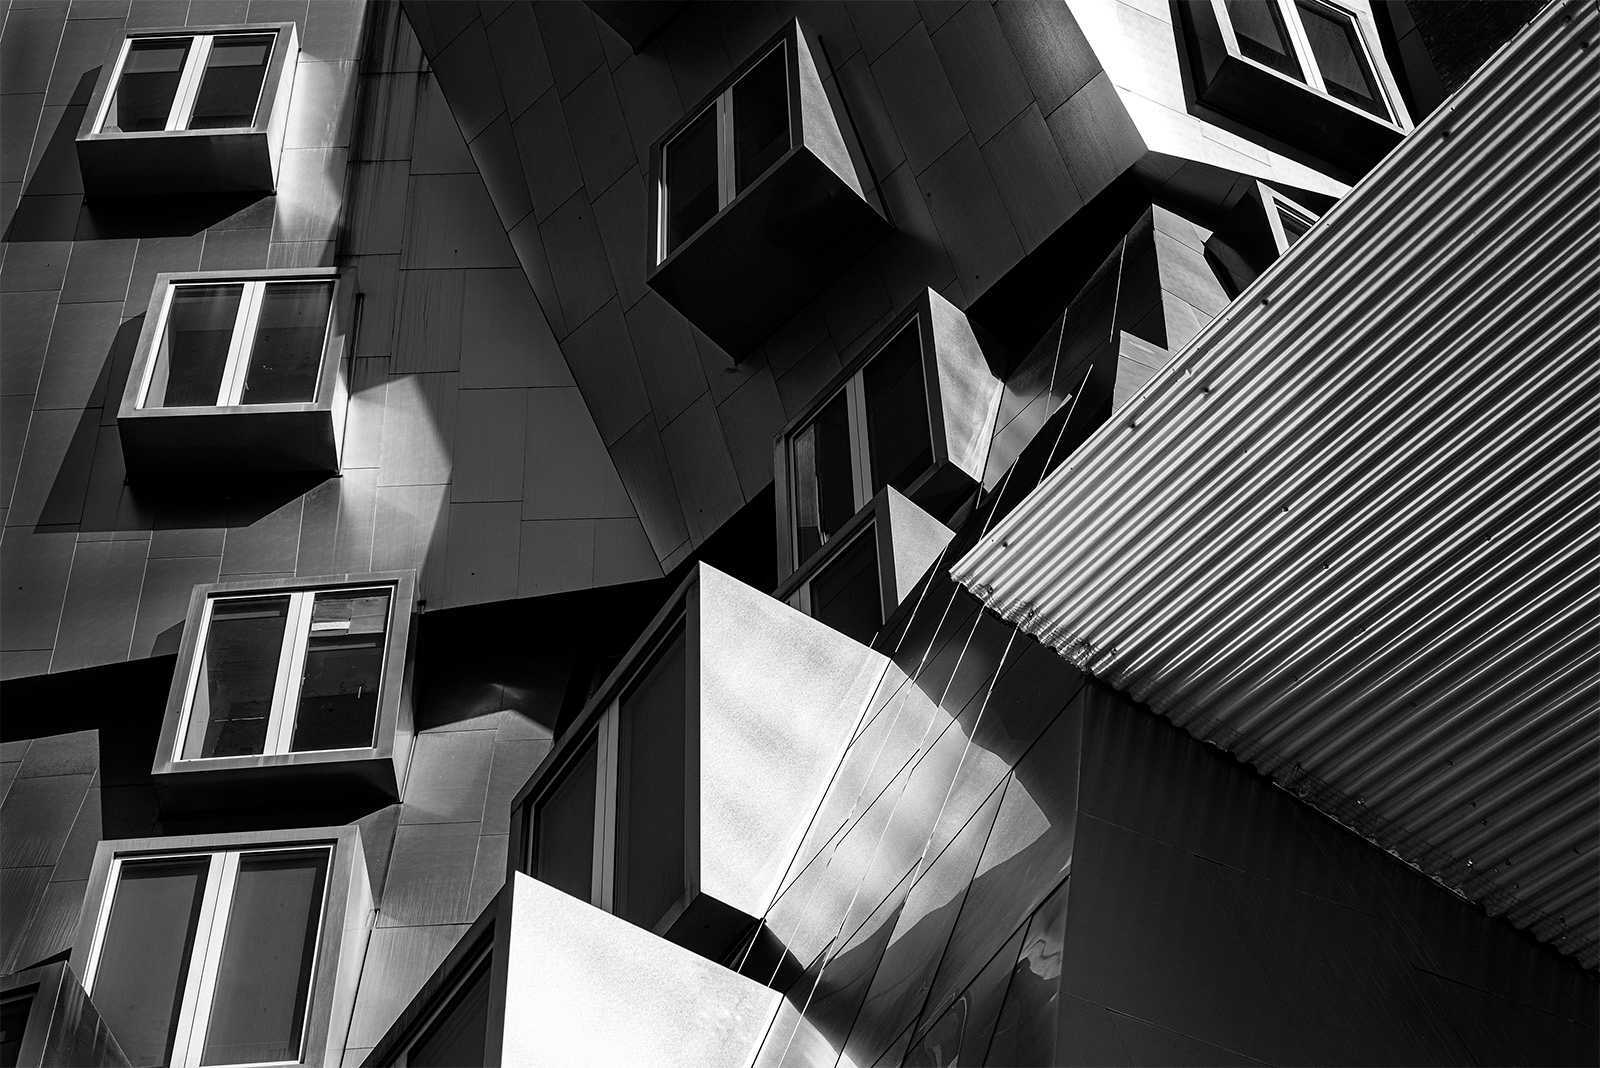 Cubist Architecture by Larry Dunn